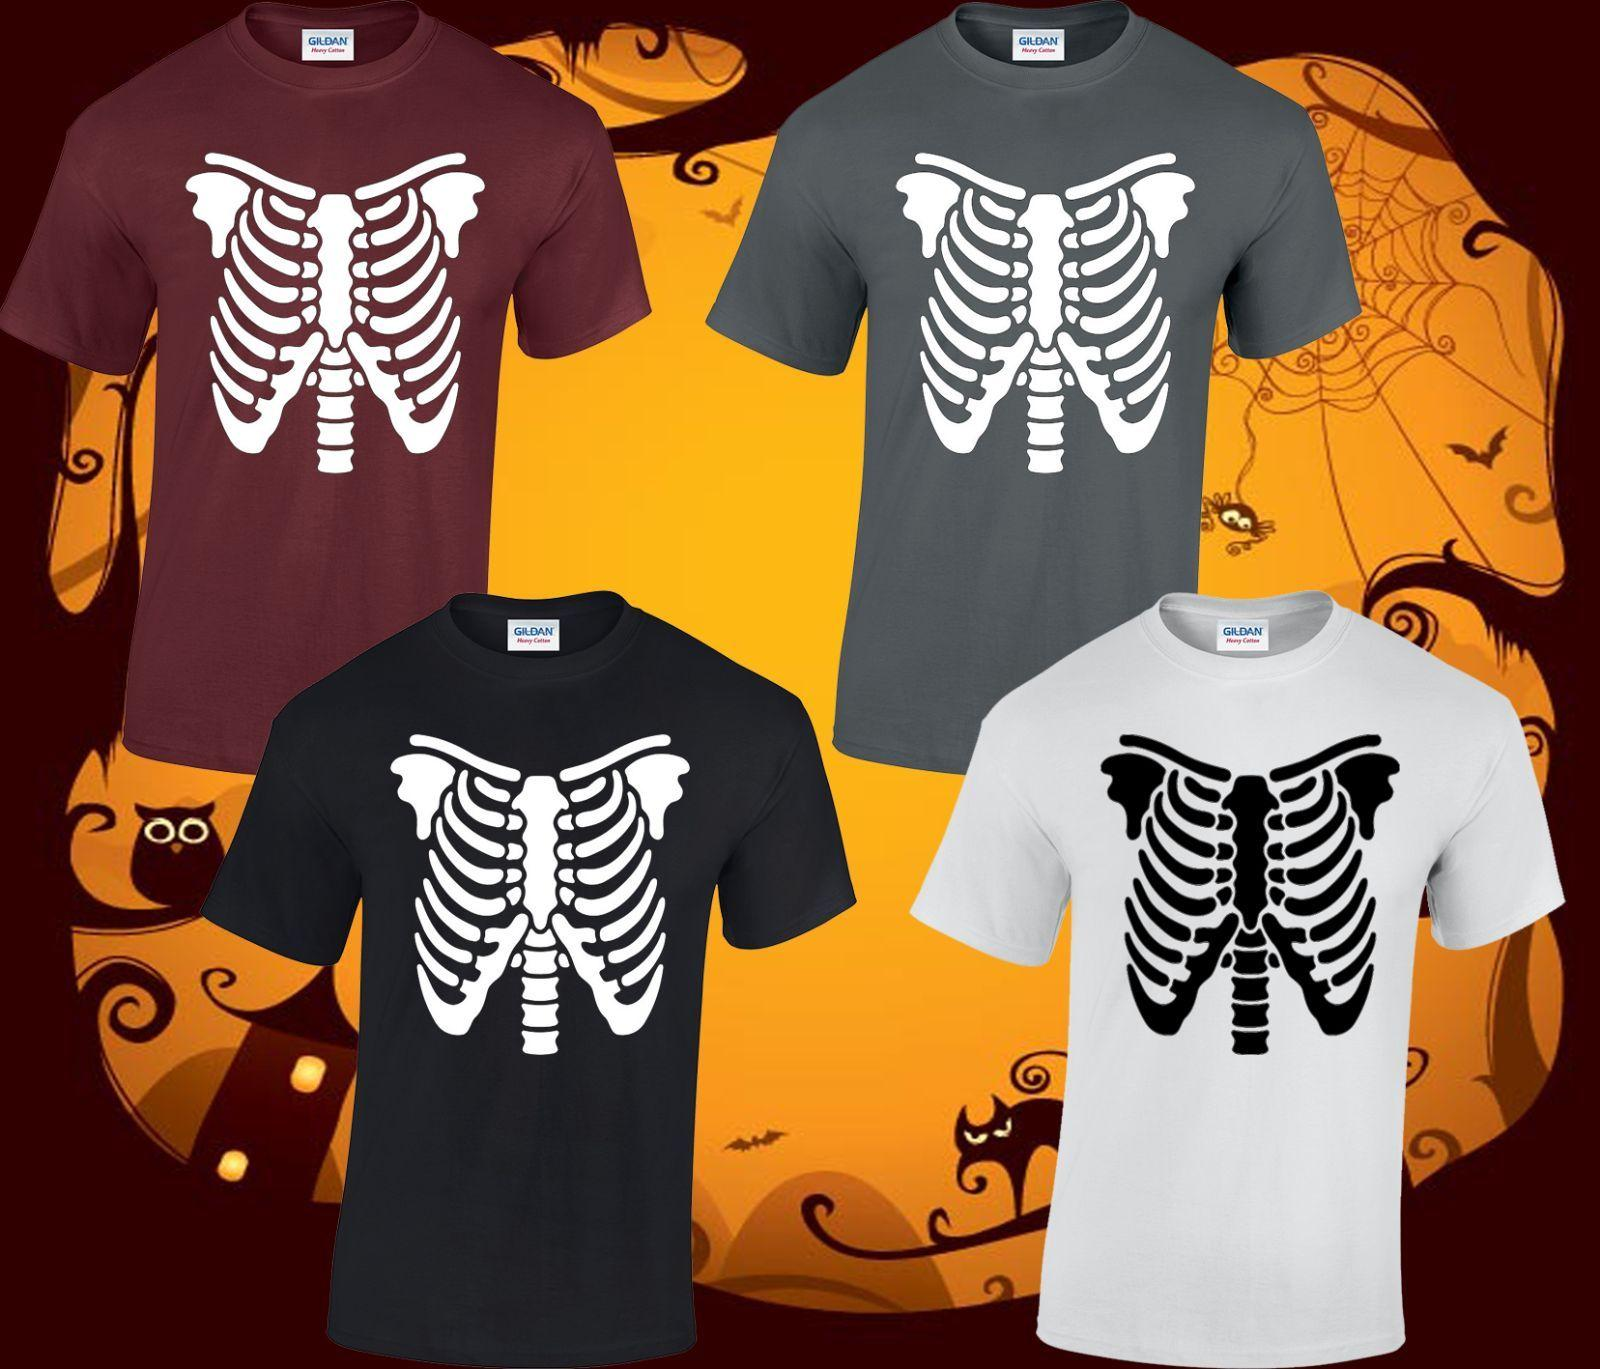 93bcf434262 Skeleton Mens T Shirt Halloween Costume Top Scary Fancy Dress Funny S 3XL  Cool Casual Pride T Shirt Men Funny Team Shirts Trendy T Shirts For Men From  ...